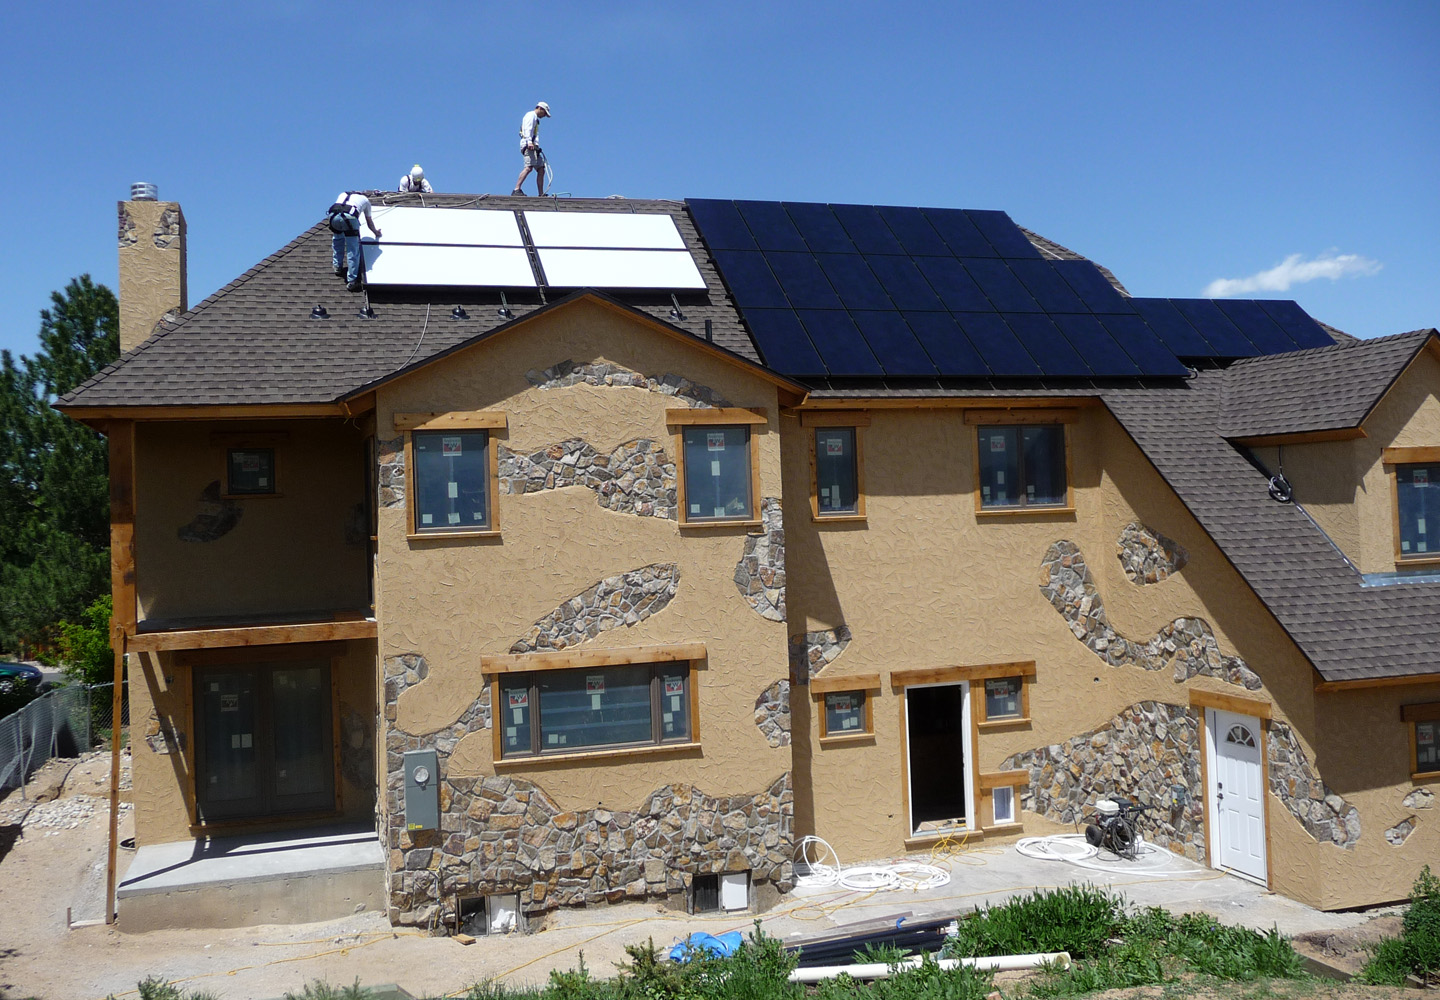 South facing platinum leed home with solar pv and solar thermal